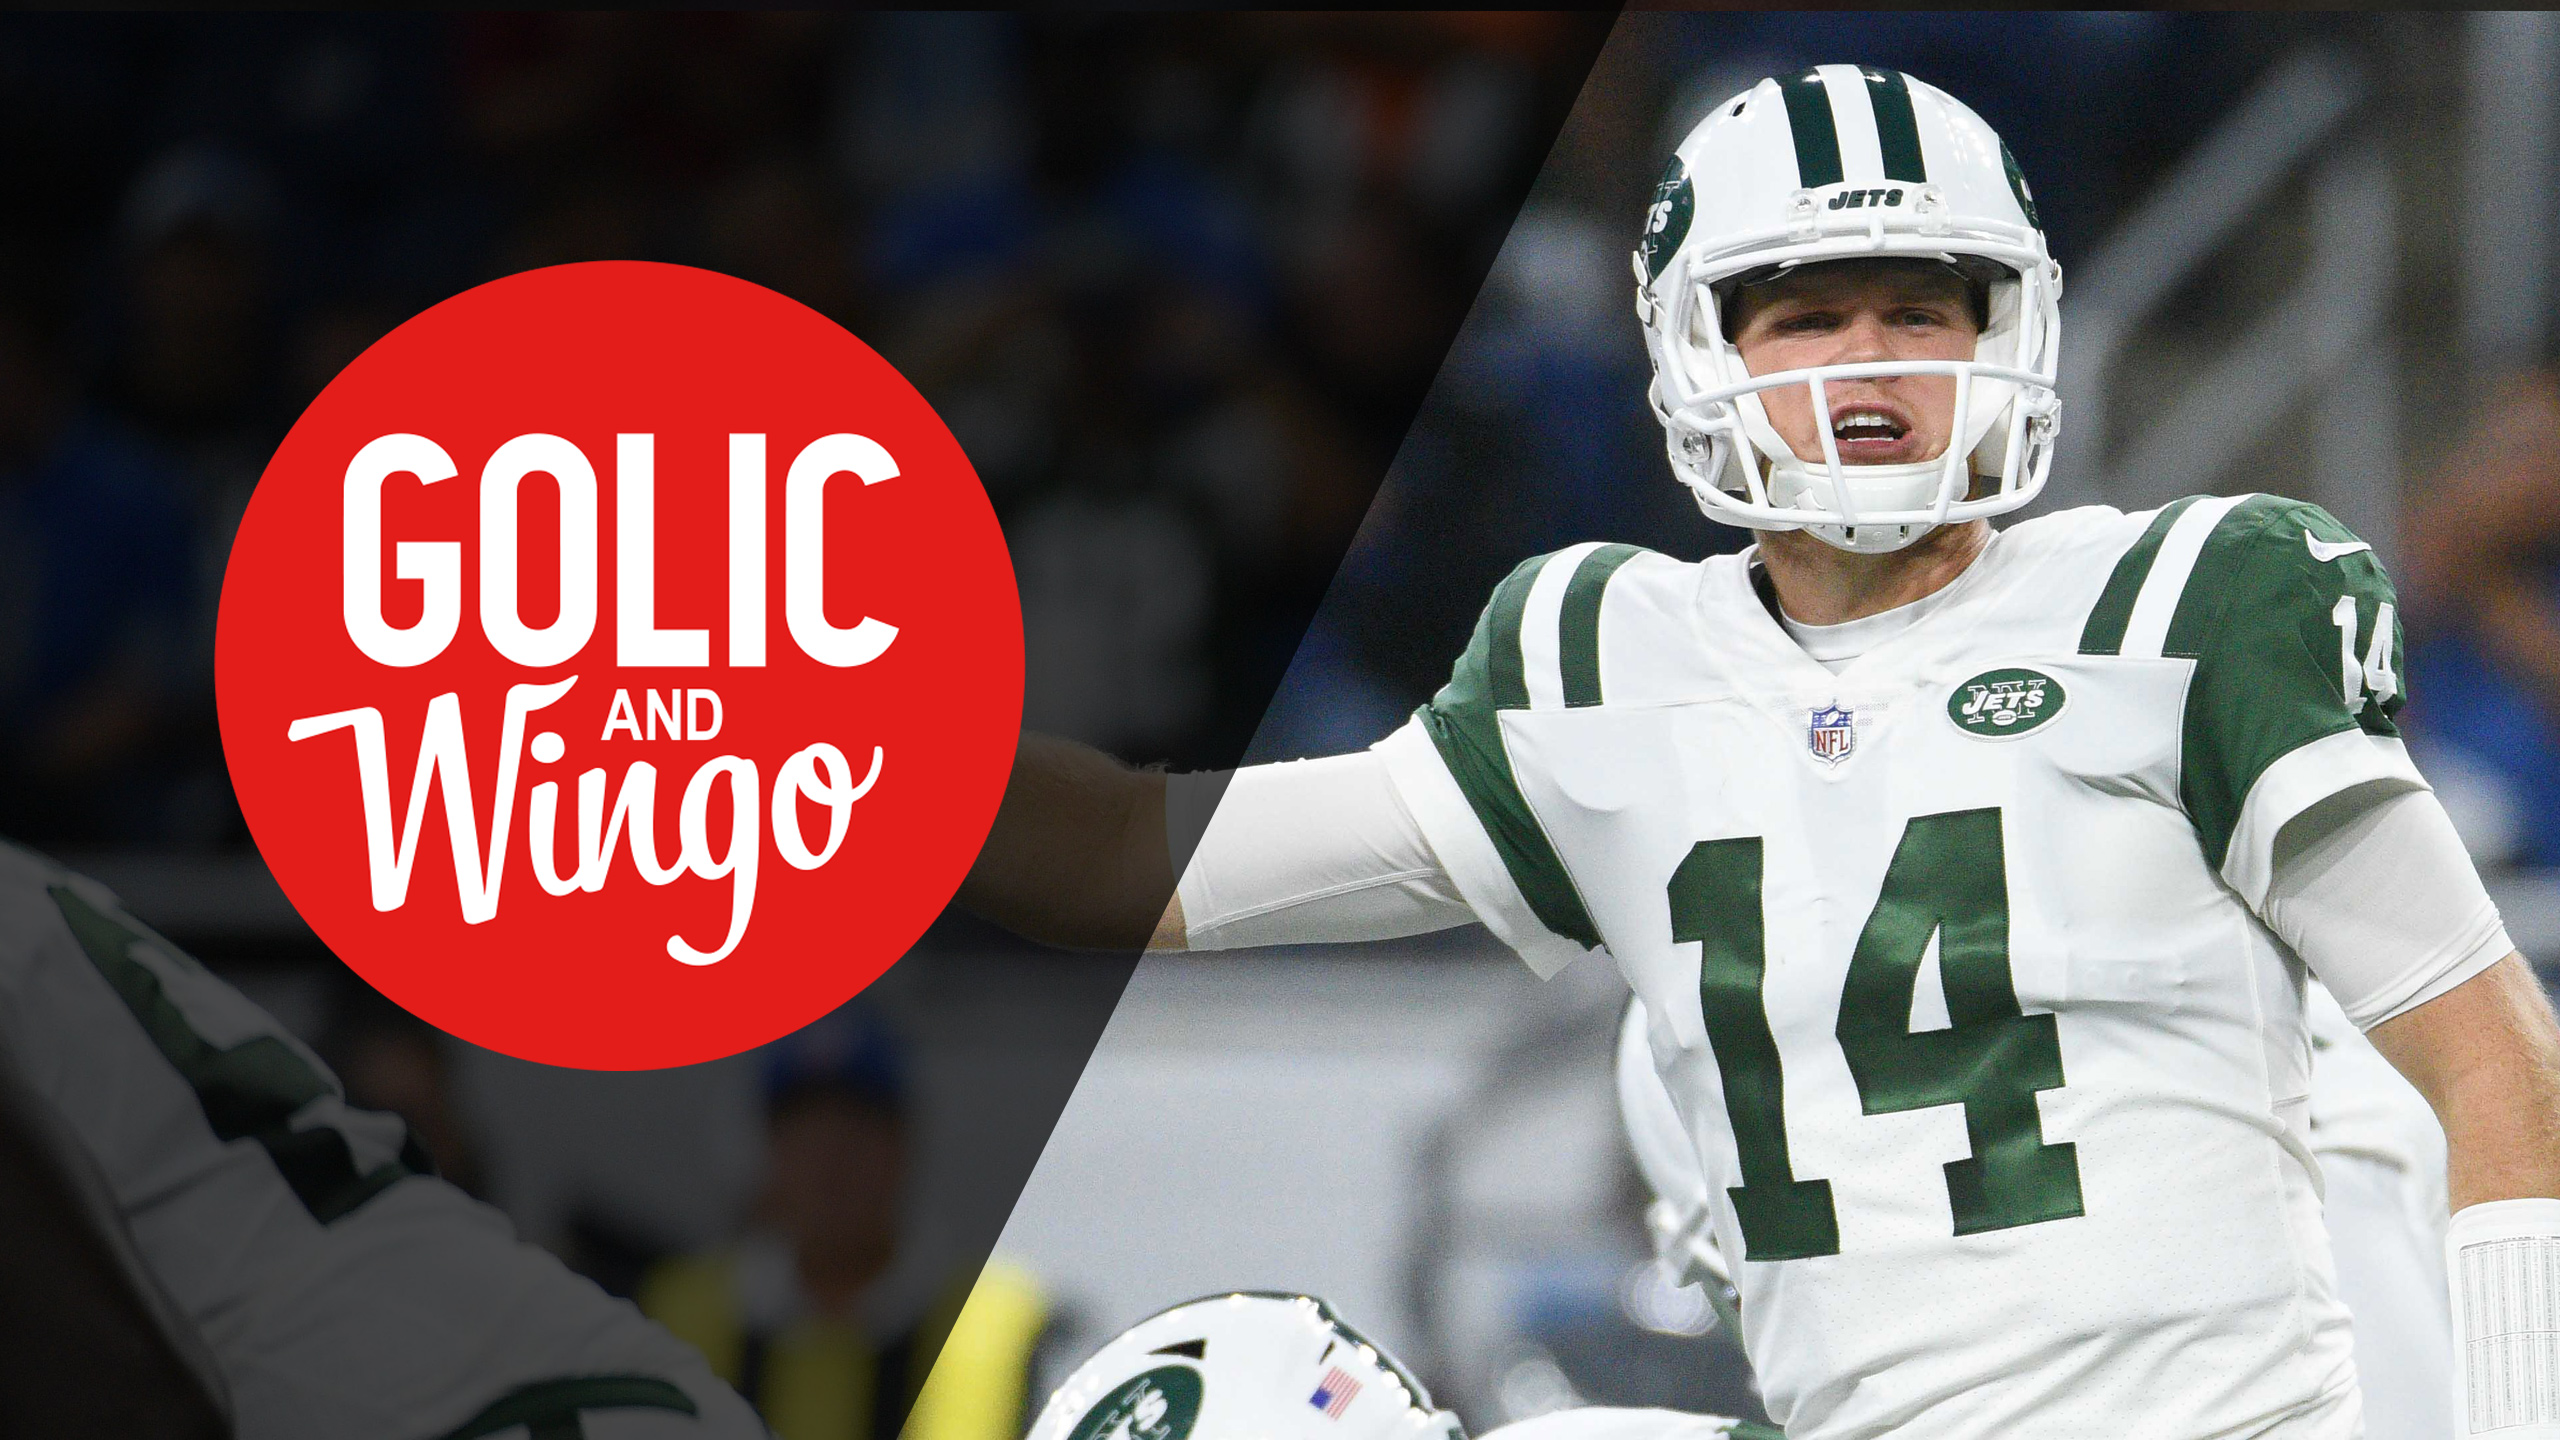 Thu, 9/20 - Golic and Wingo